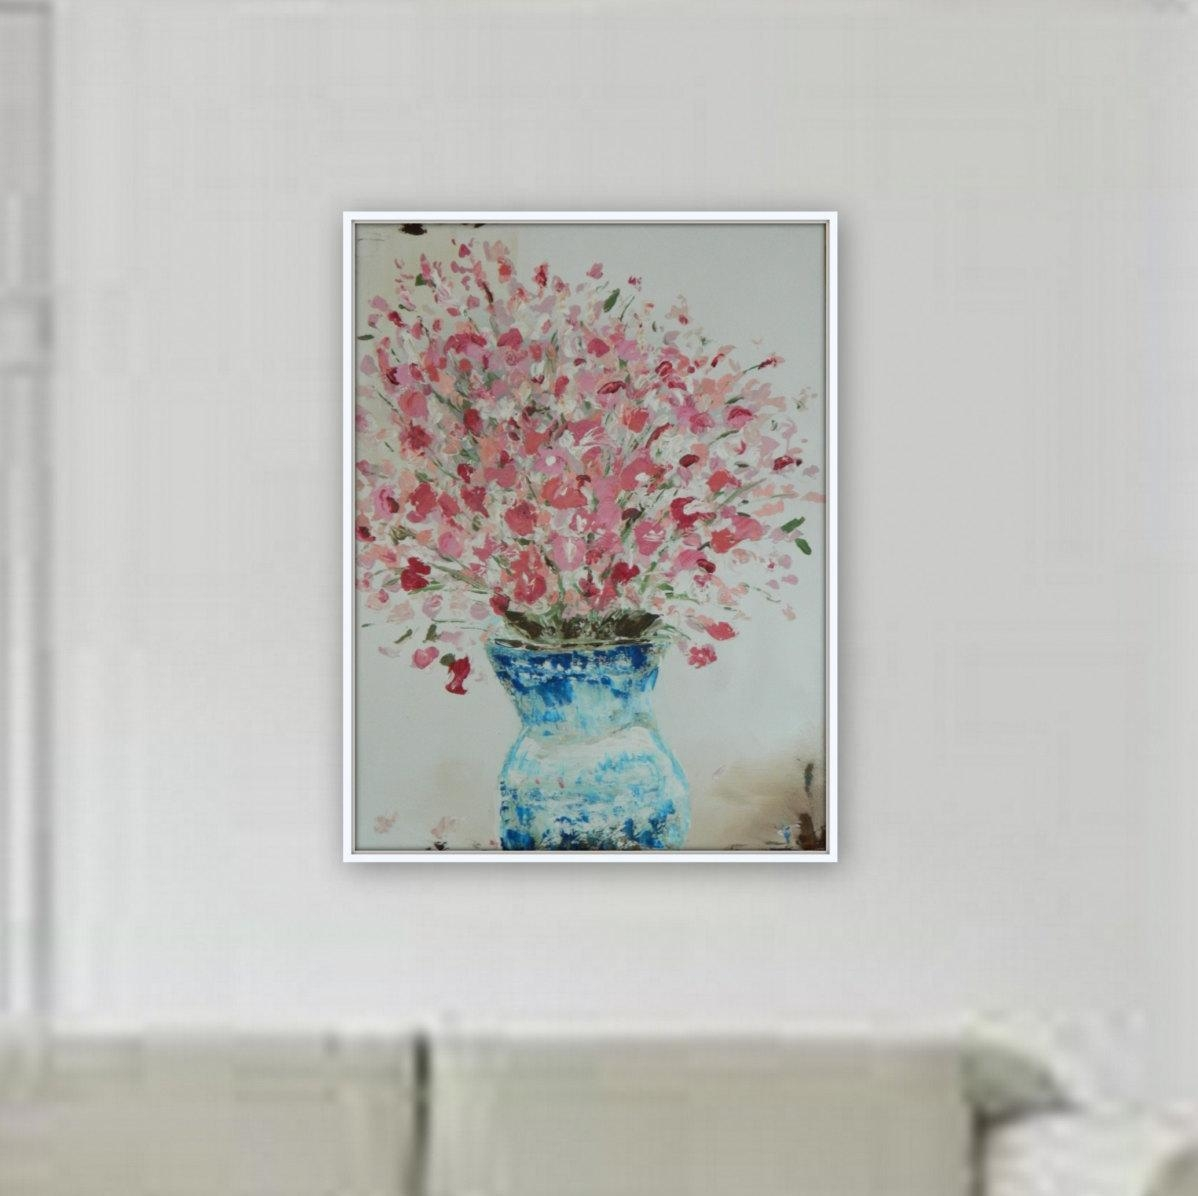 Flower Painting Original Wall Art Ready To Hang Canvas Painting Pertaining To 48X48 Canvas Wall Art (Image 9 of 20)